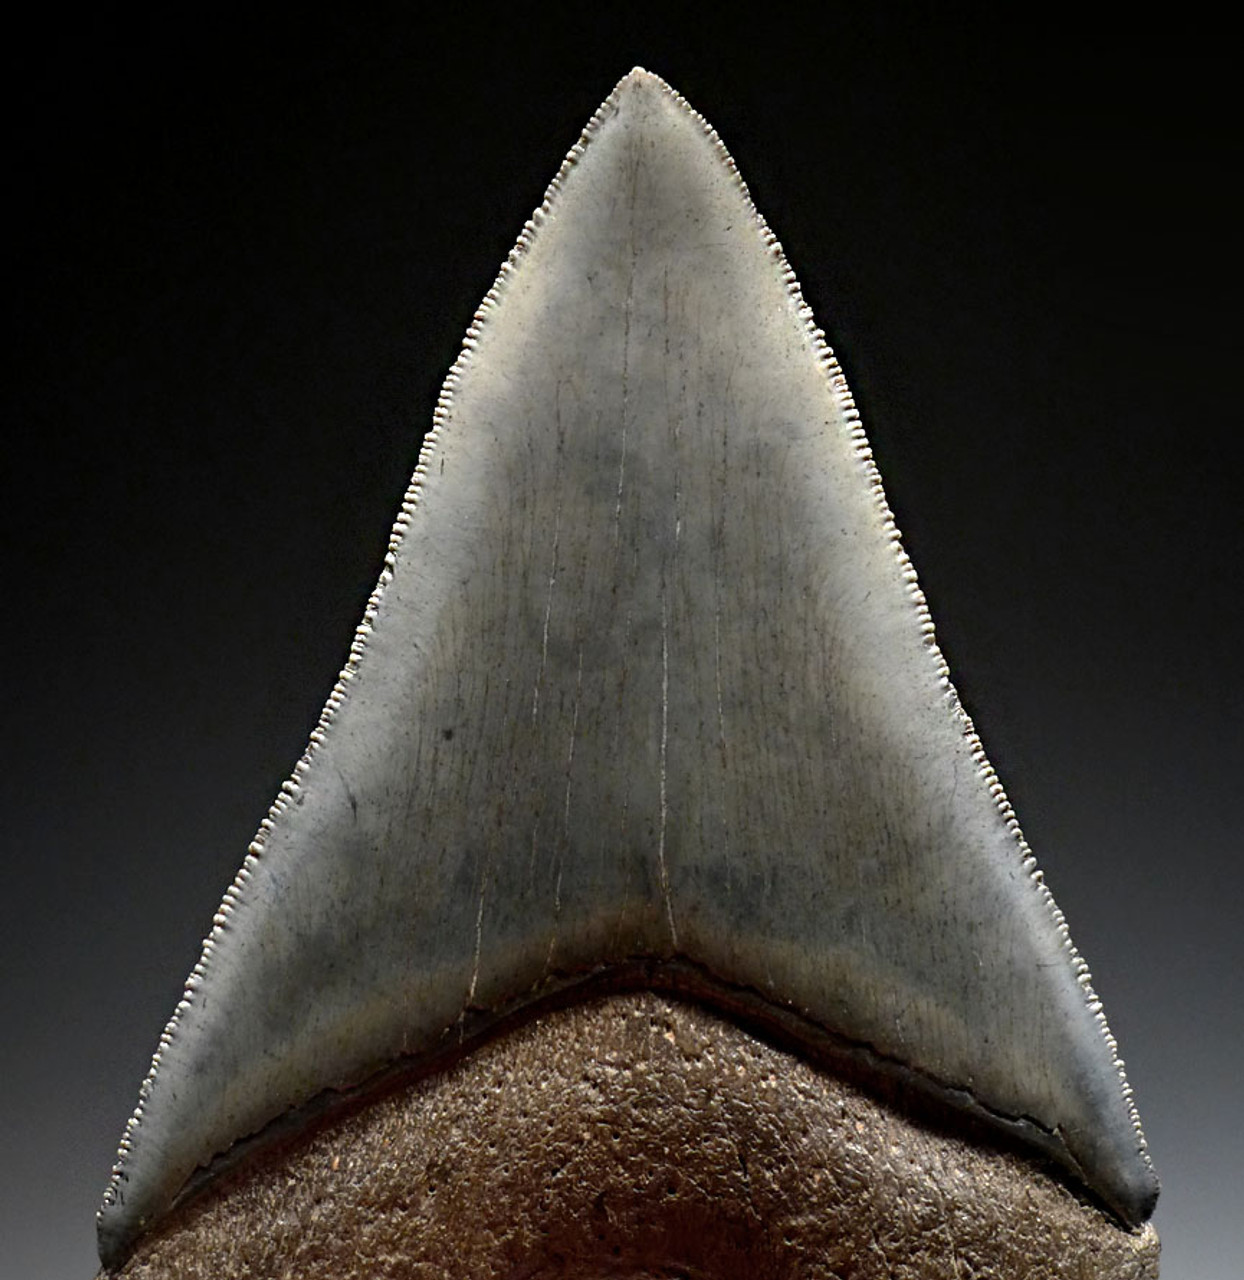 SH6-407 - COLLECTOR GRADE MEGALODON SHARK STABBING LOWER JAW TOOTH 4.6 INCHES LONG